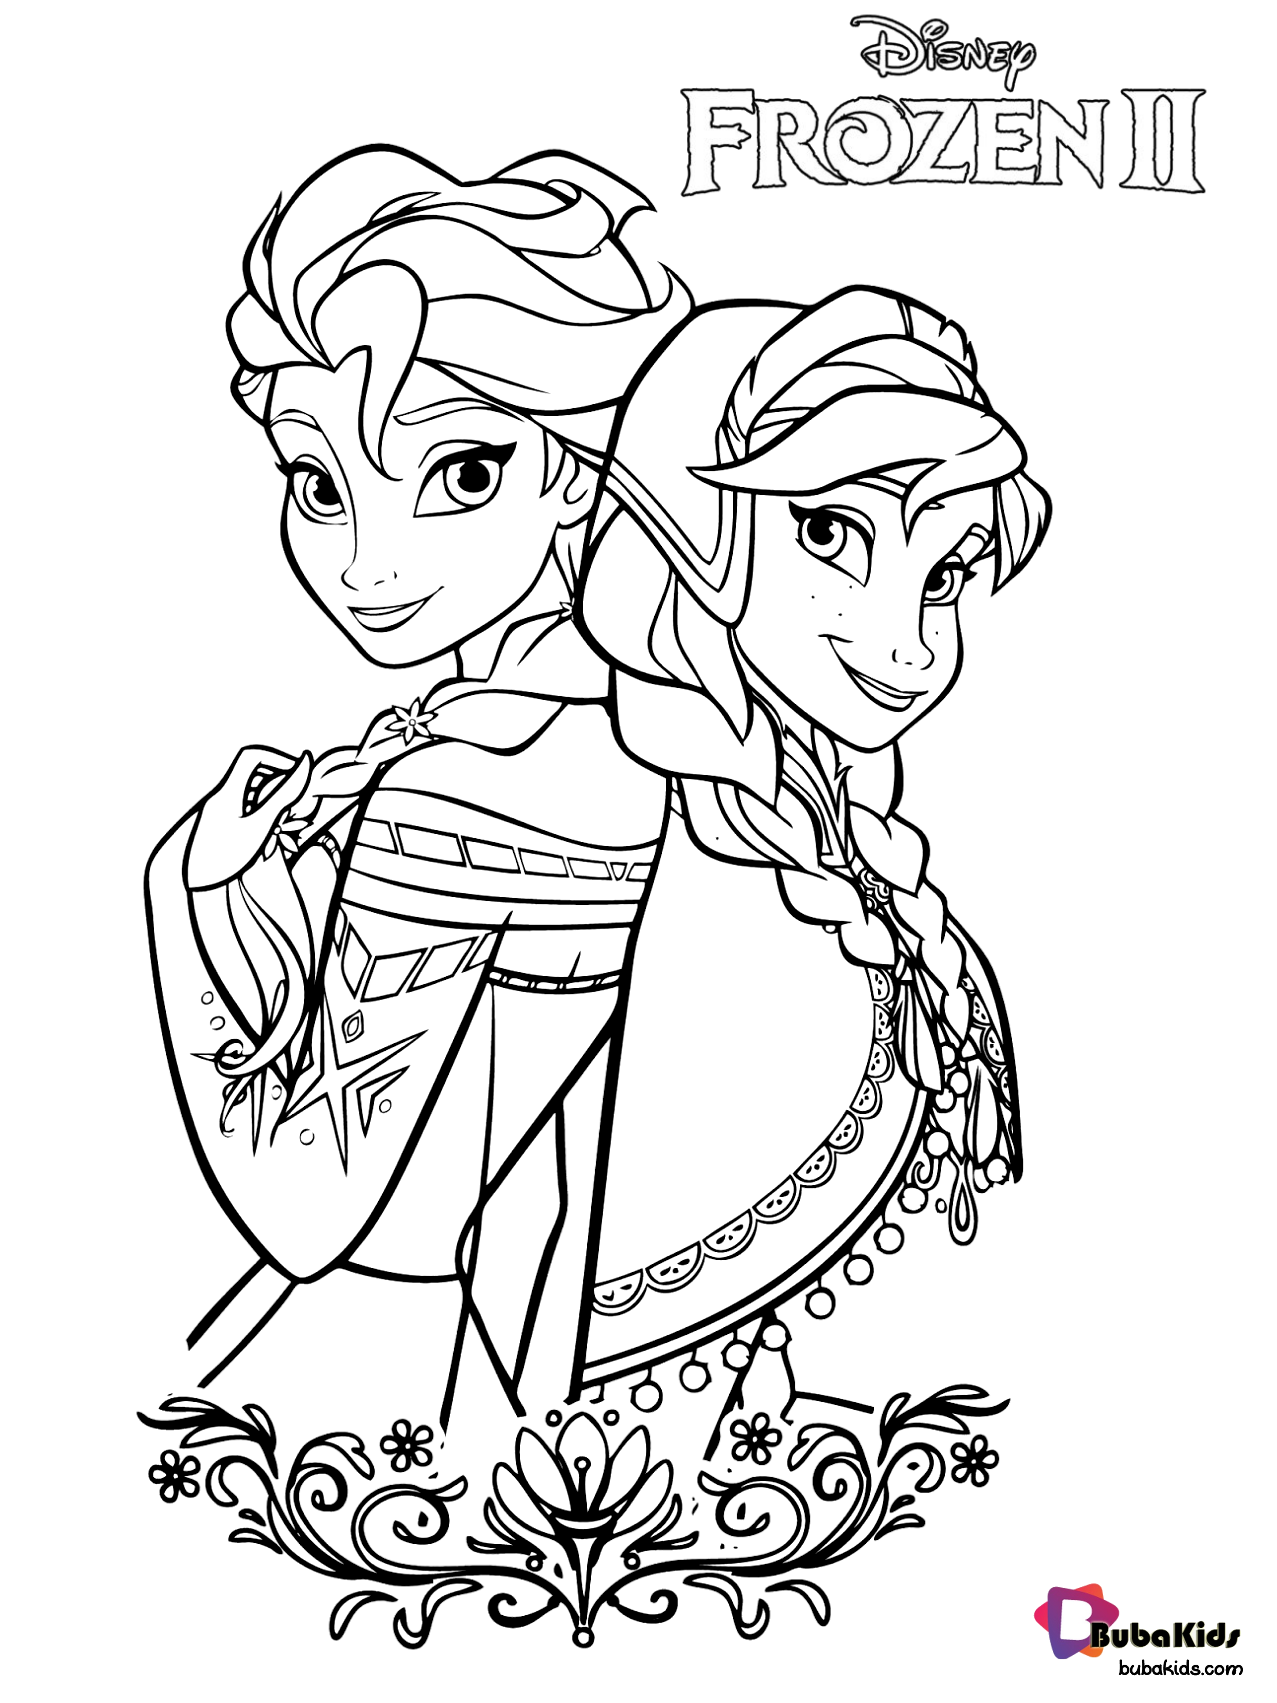 Free Download And Printable Coloring Pages Frozen 2 Coloring Pages Queen Elsa And A In 2020 Disney Princess Coloring Pages Elsa Coloring Pages Disney Coloring Sheets